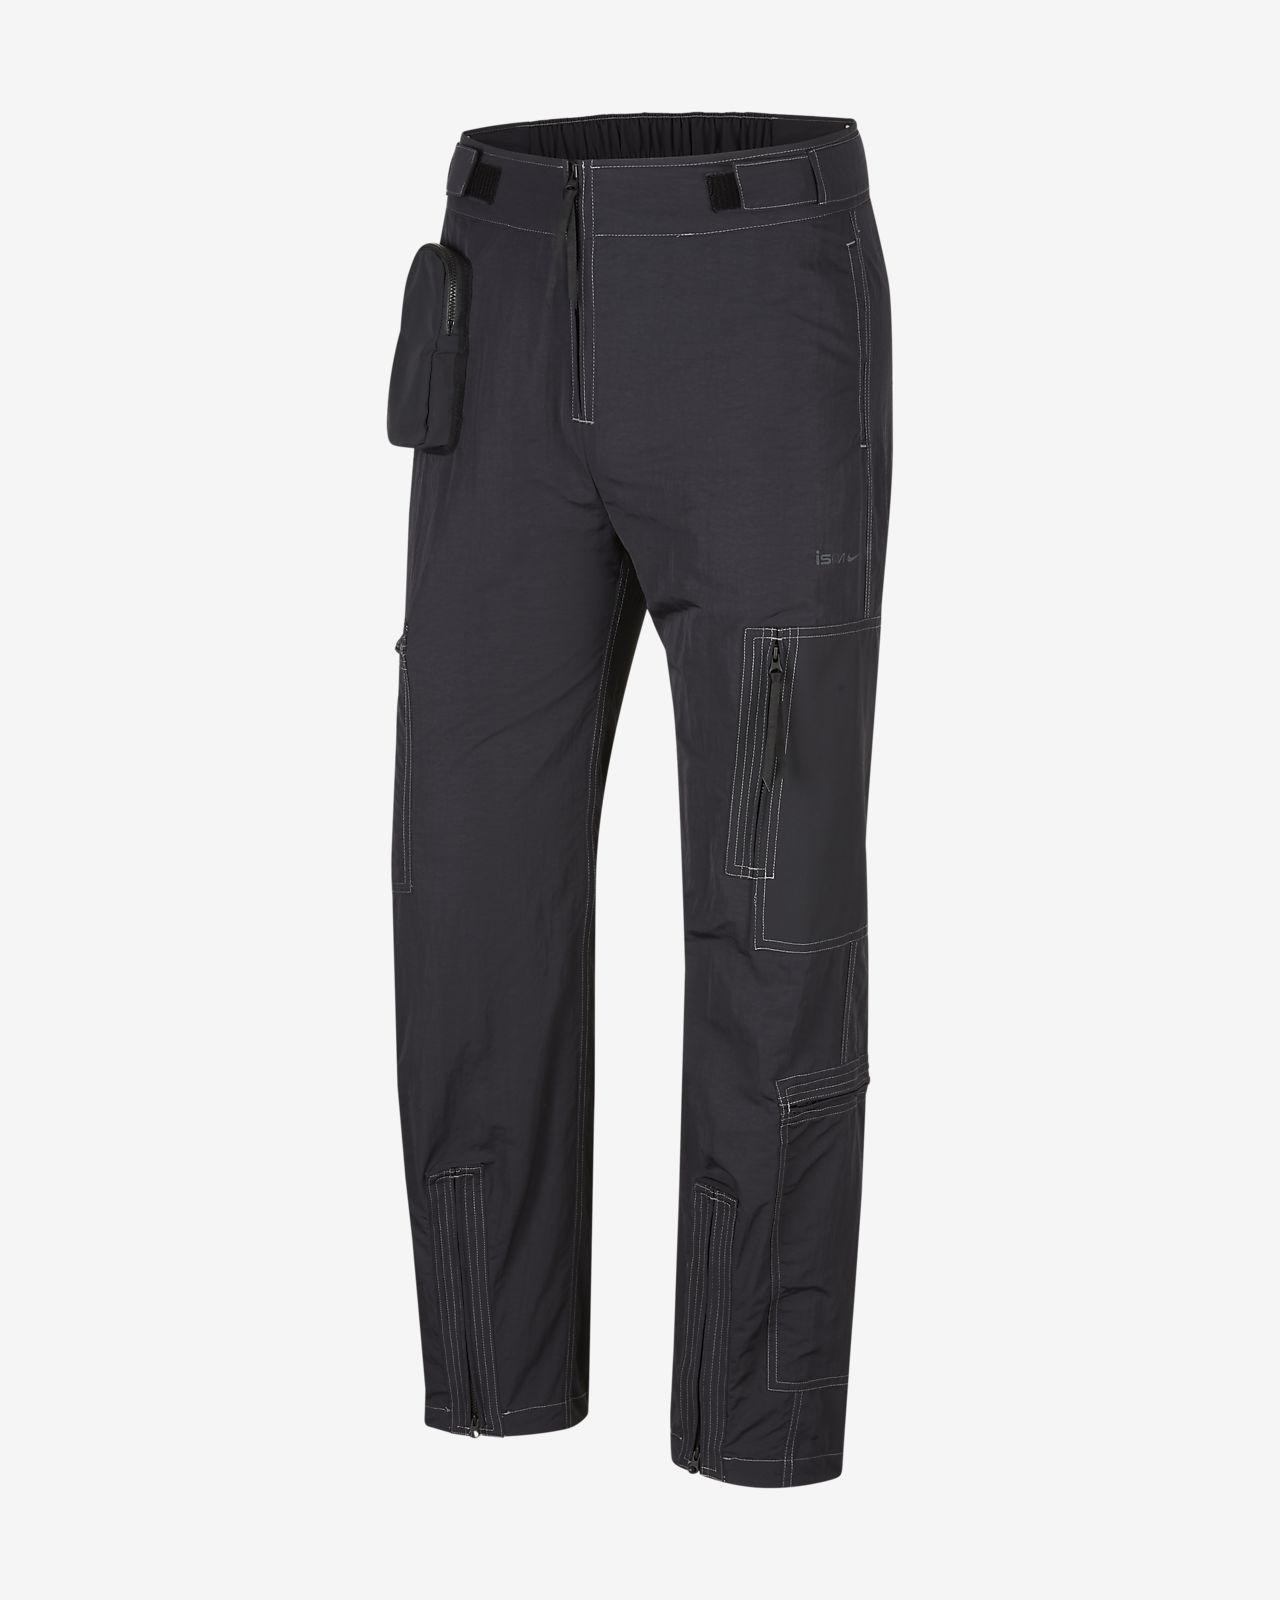 Nike ISPA Women's Trousers